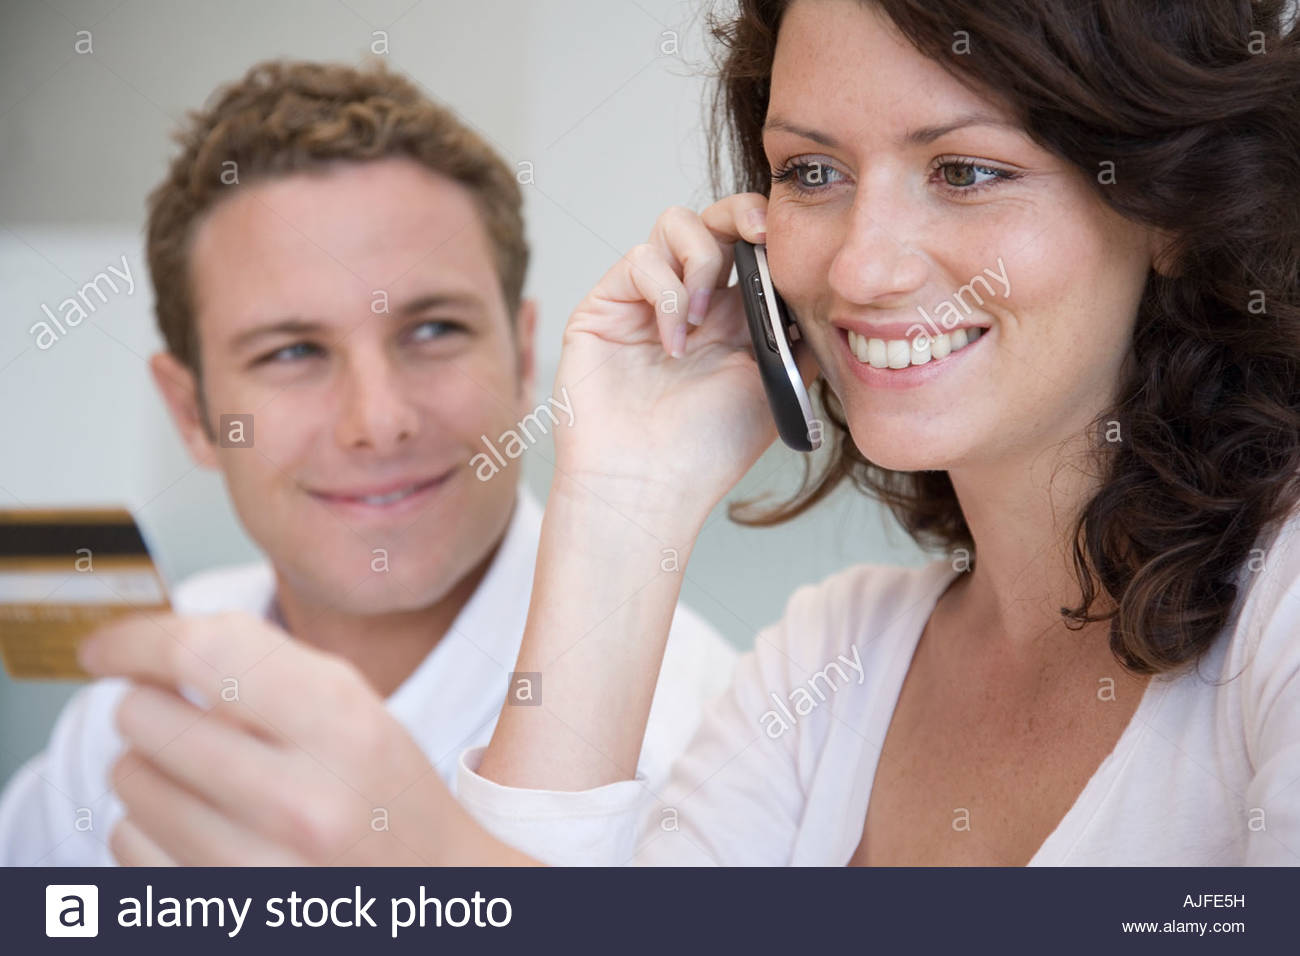 A couple telephone banking - Stock Image